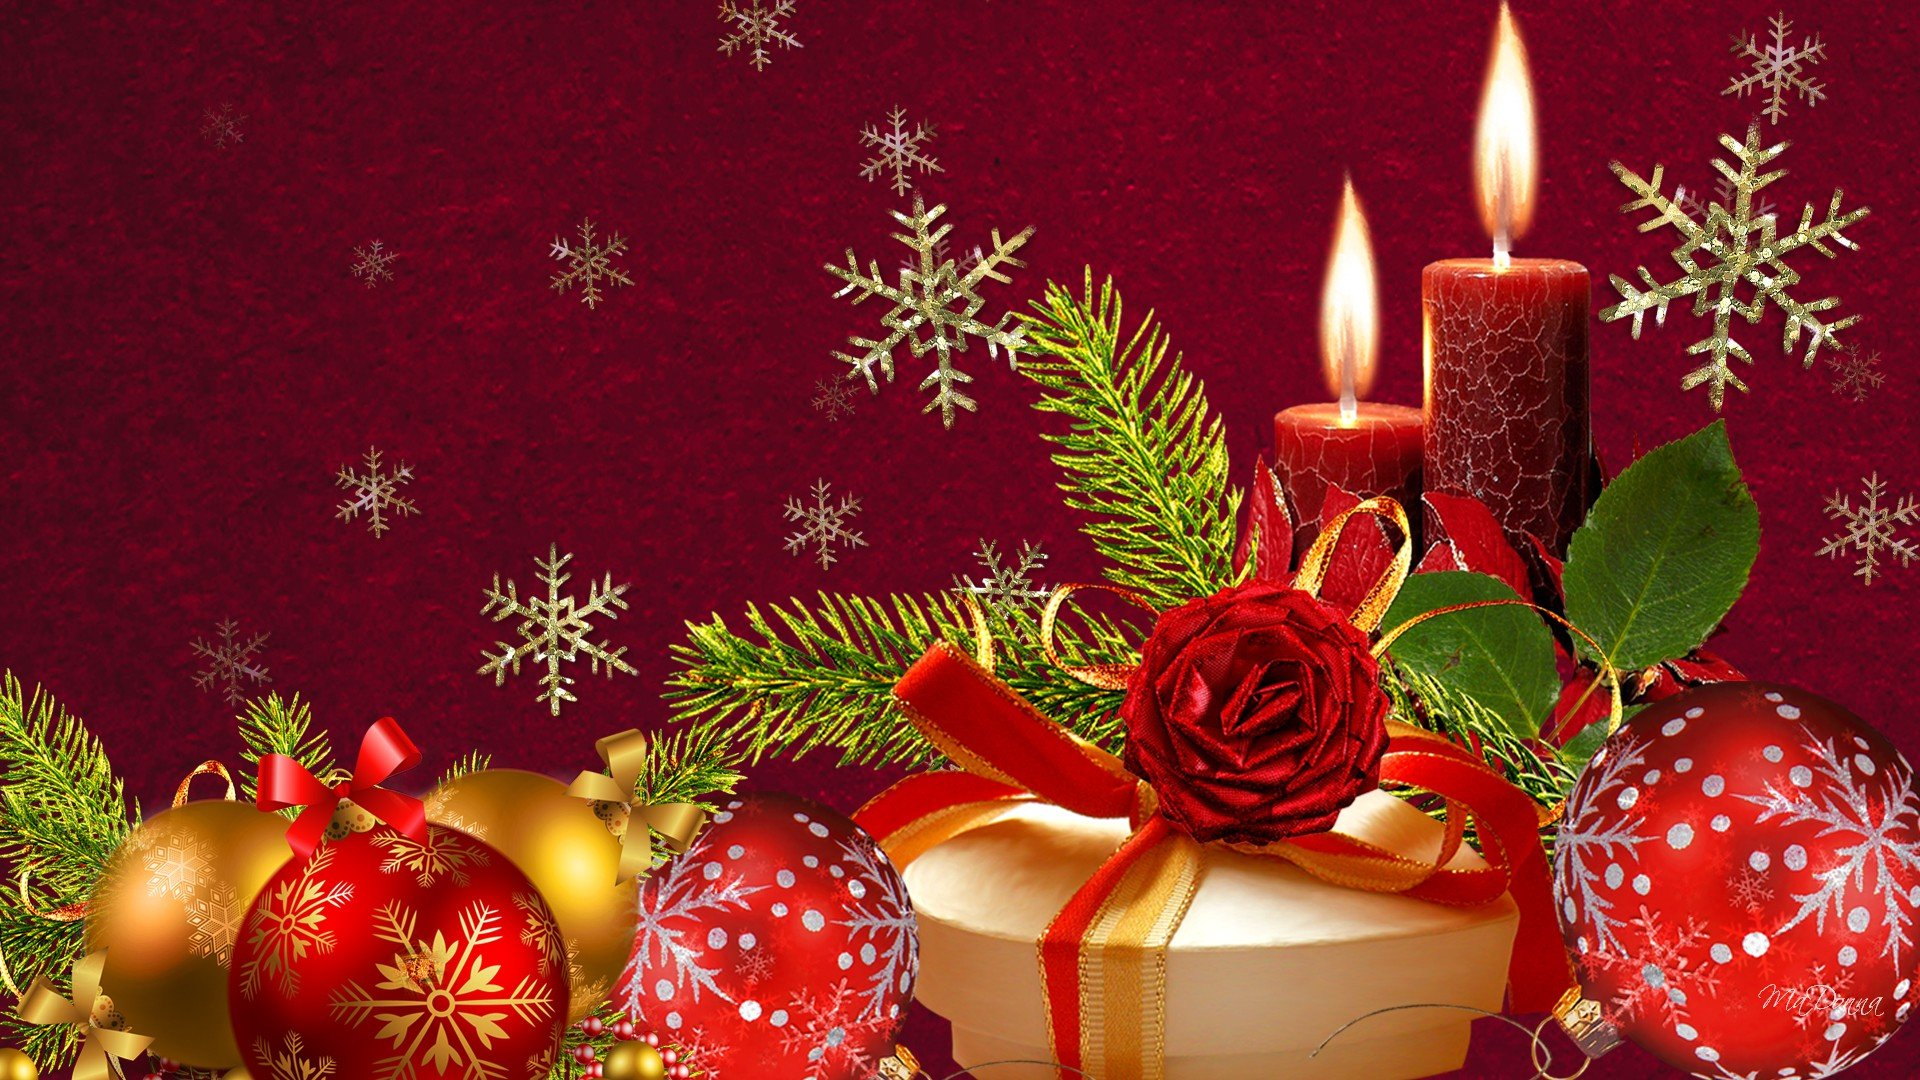 Red and Green Christmas - Backgrounds, Wallpapers, Pictures, Pics ...